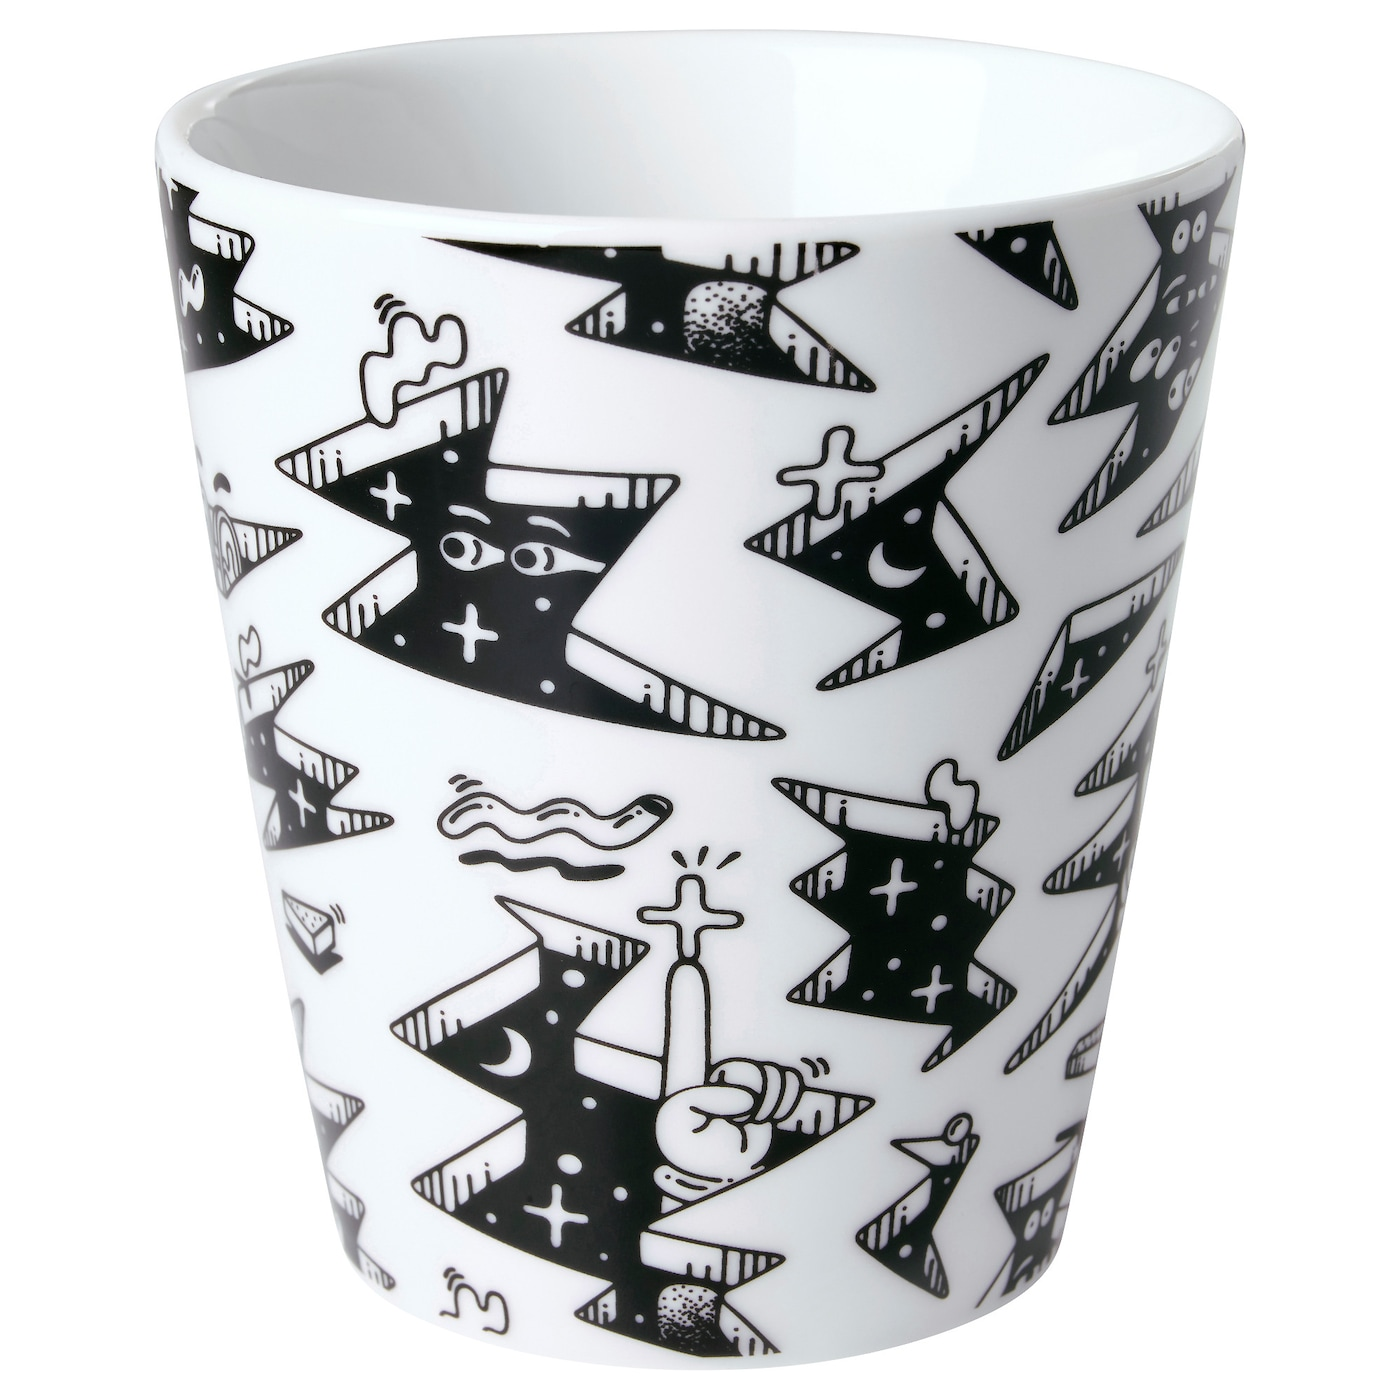 IKEA STUNSIG mug Made of feldspar porcelain, which makes the mug impact resistant and durable.